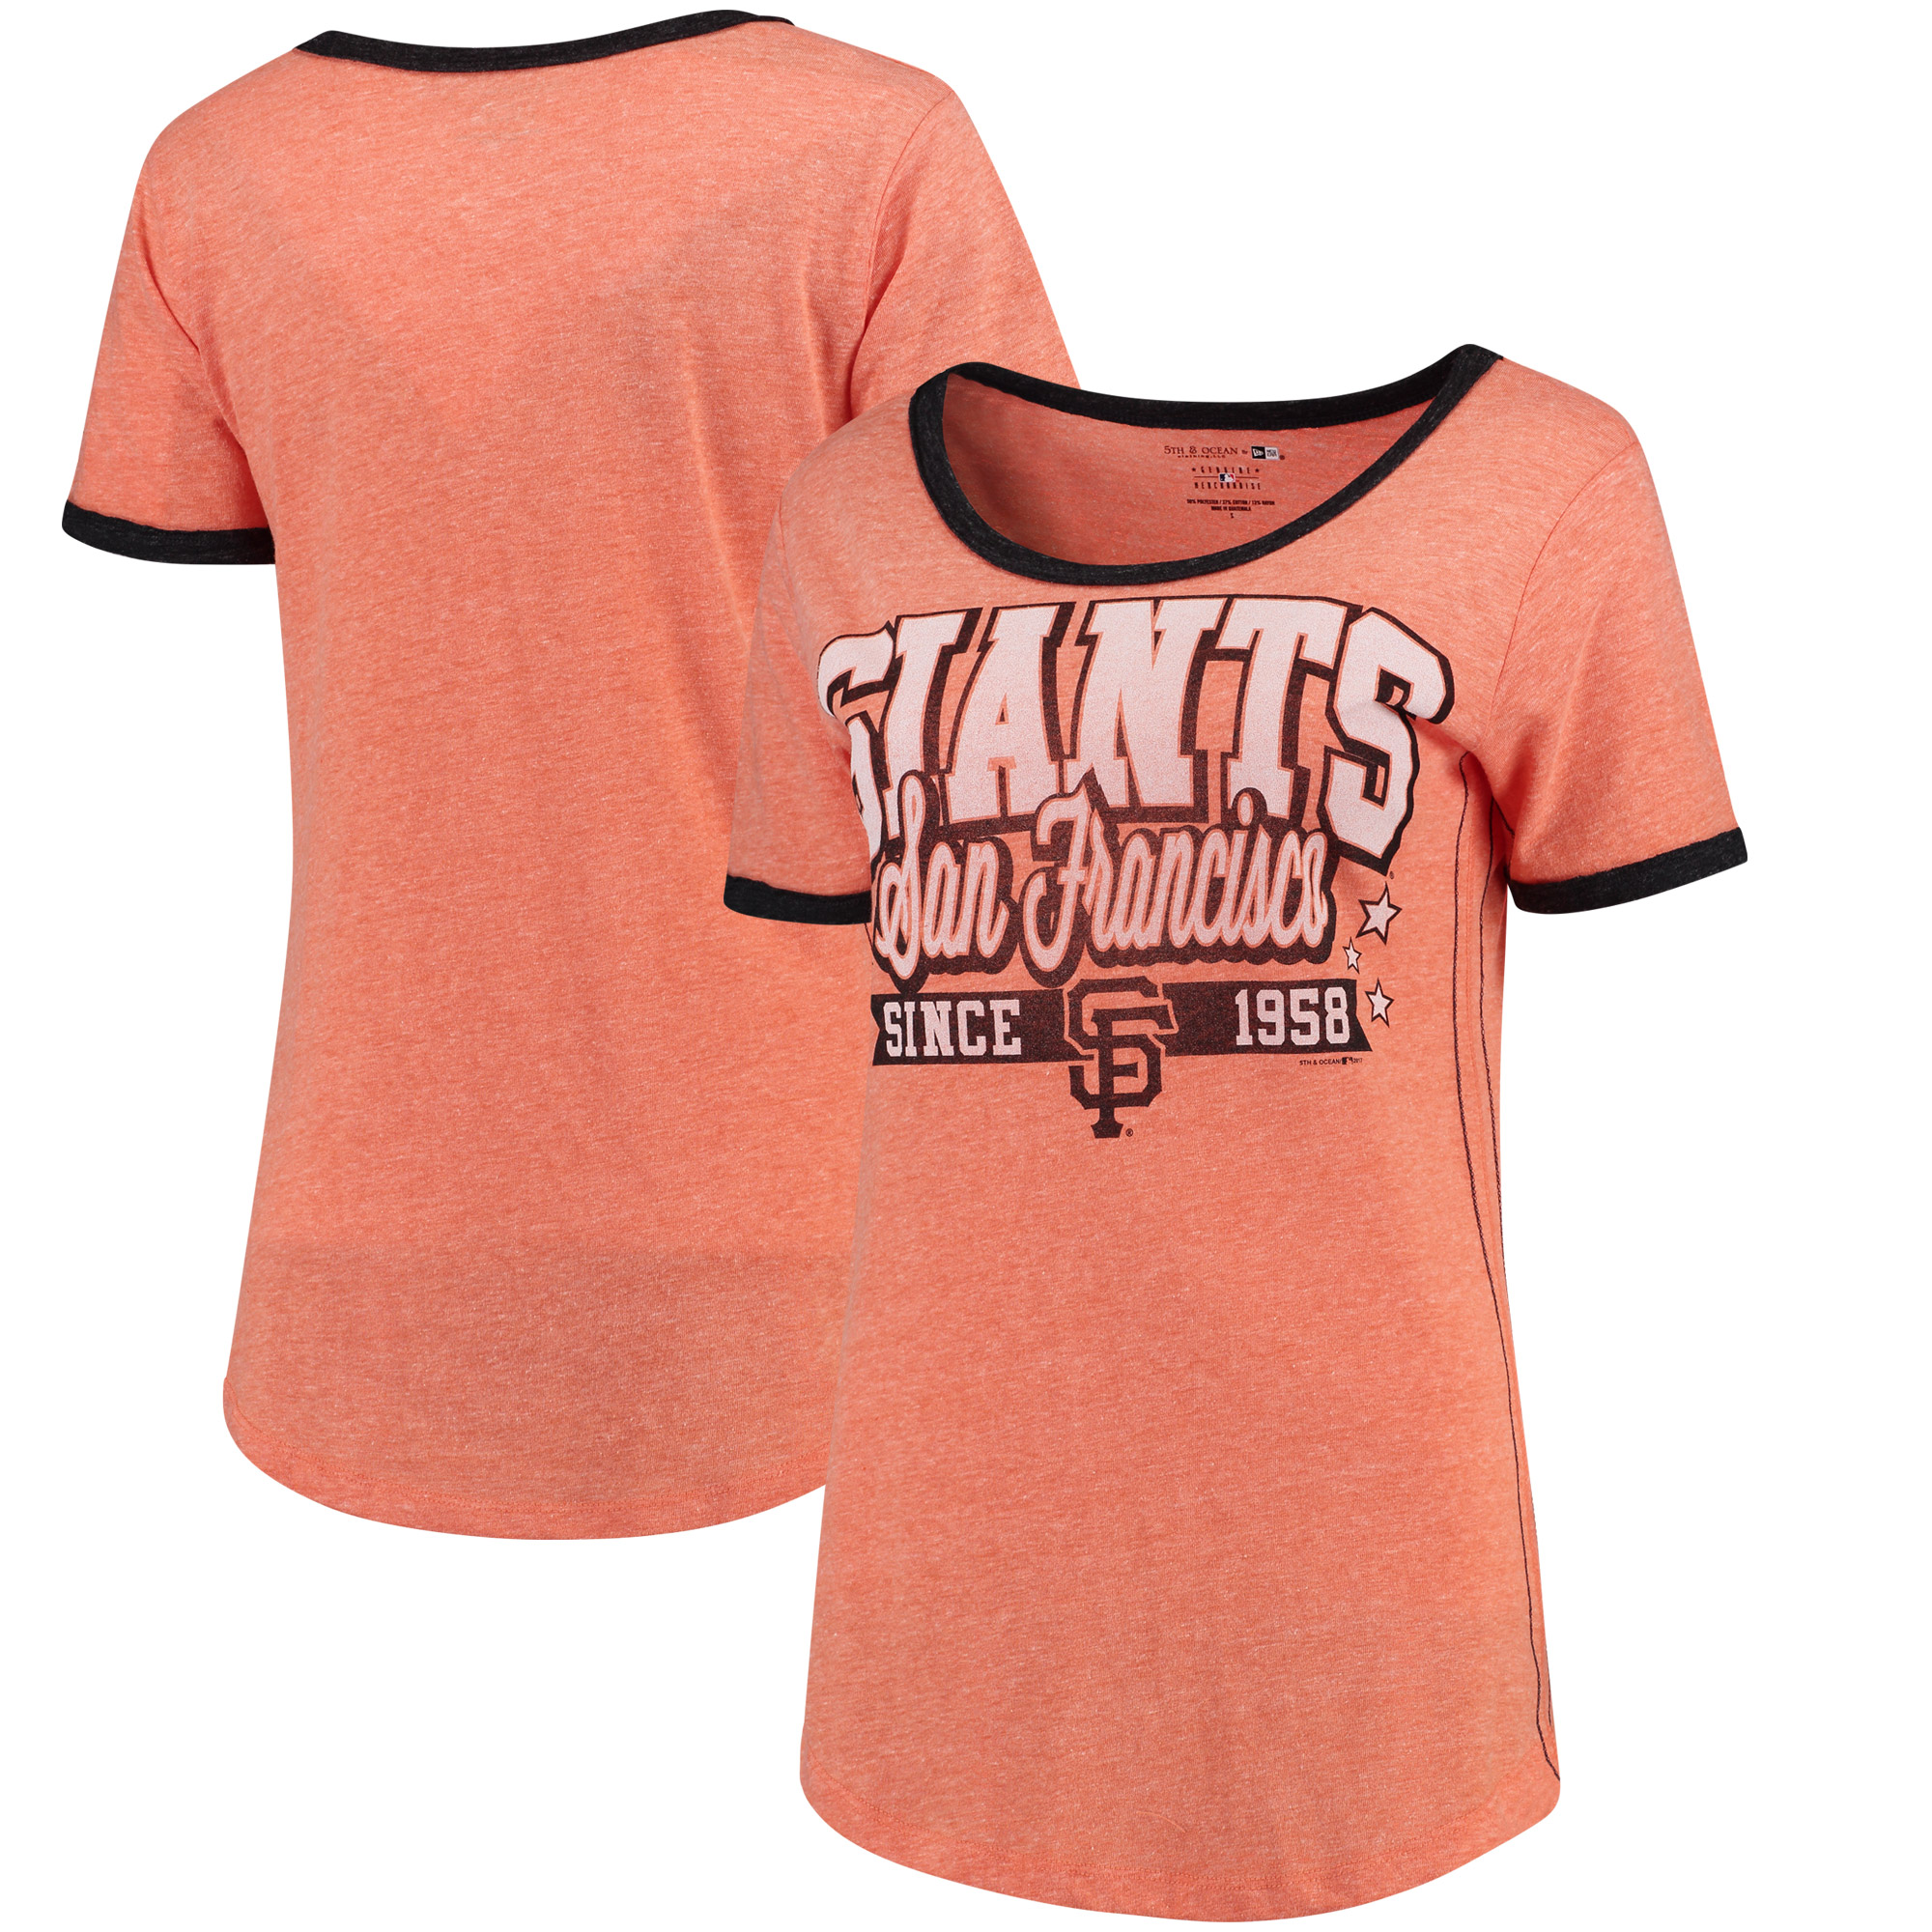 San Francisco Giants 5th & Ocean by New Era Women's Jersey Ringer Tri-Blend T-Shirt - Orange/Black